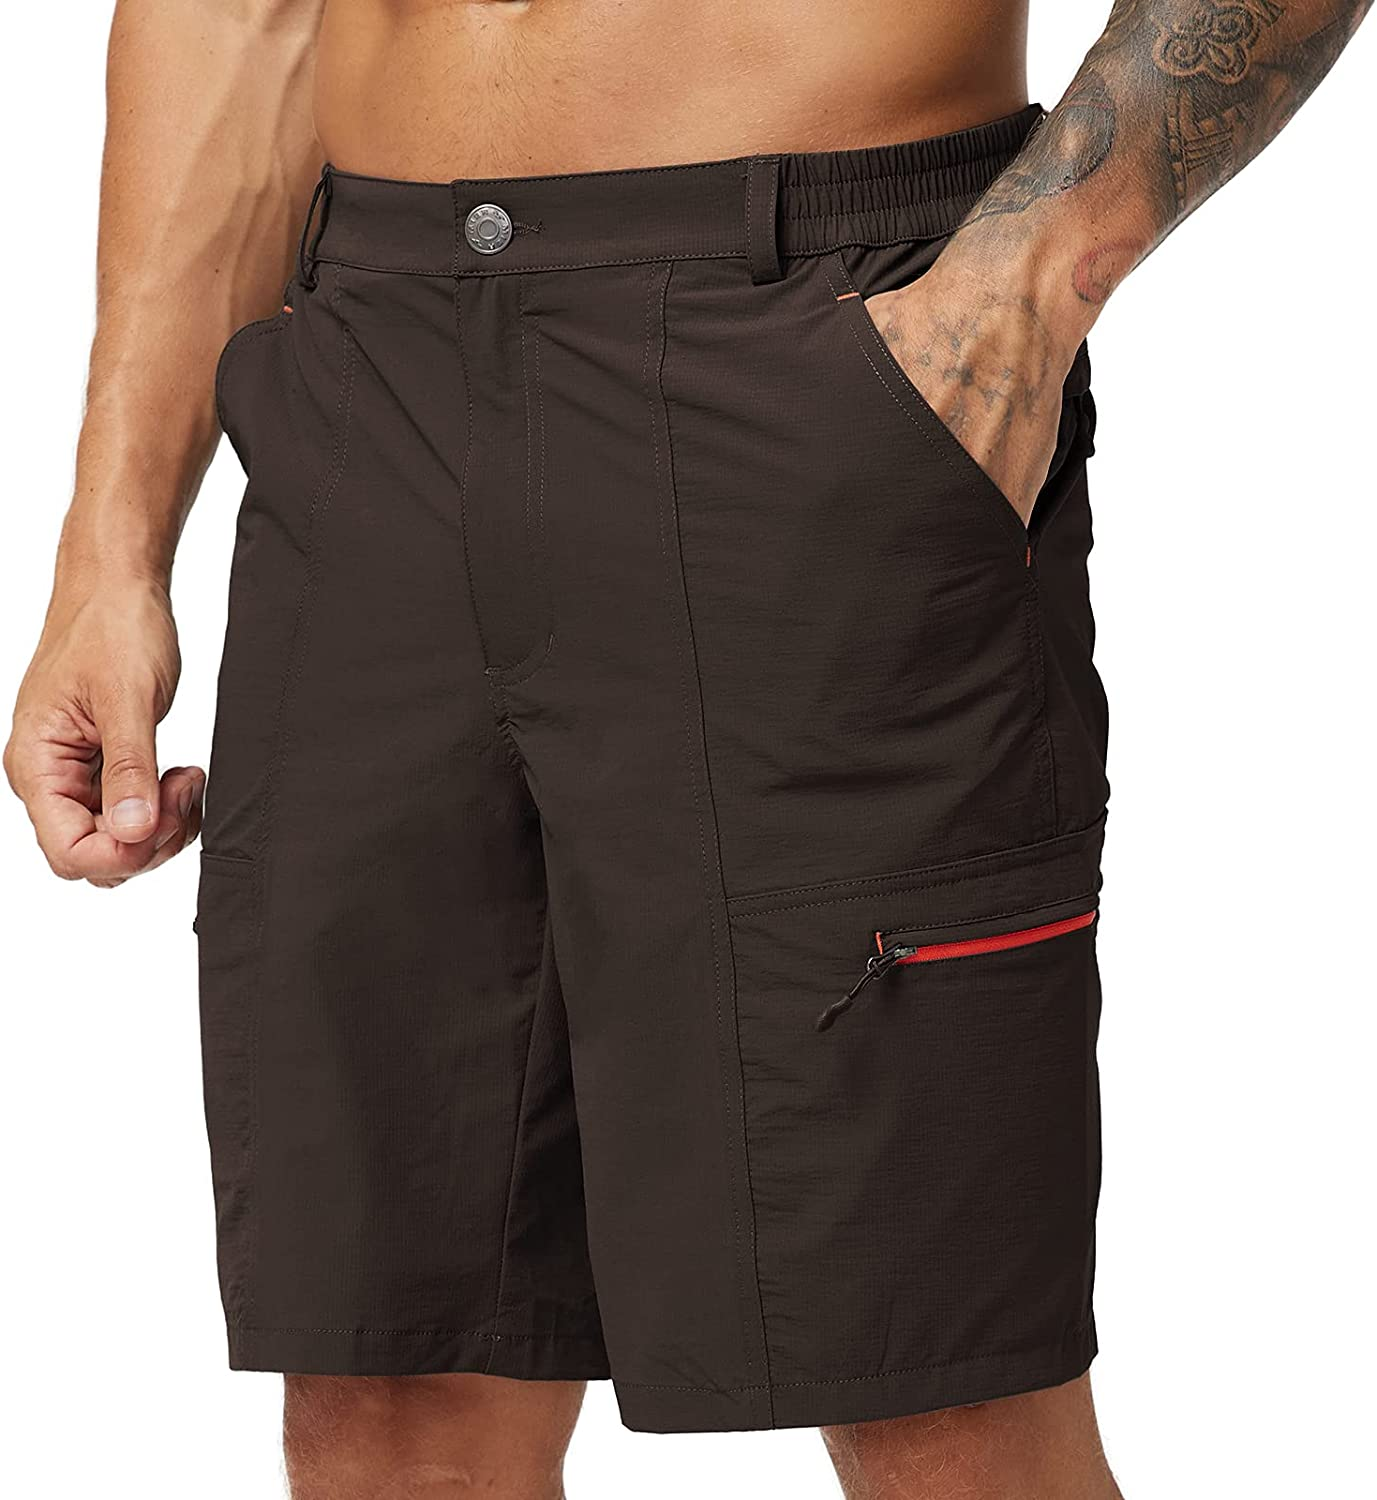 MIER Men's Hiking Cargo Shorts Quick Dry Outdoor Nylon Short with 6 Pockets, Water Resistant, Lightweight : Clothing, Shoes & Jewelry